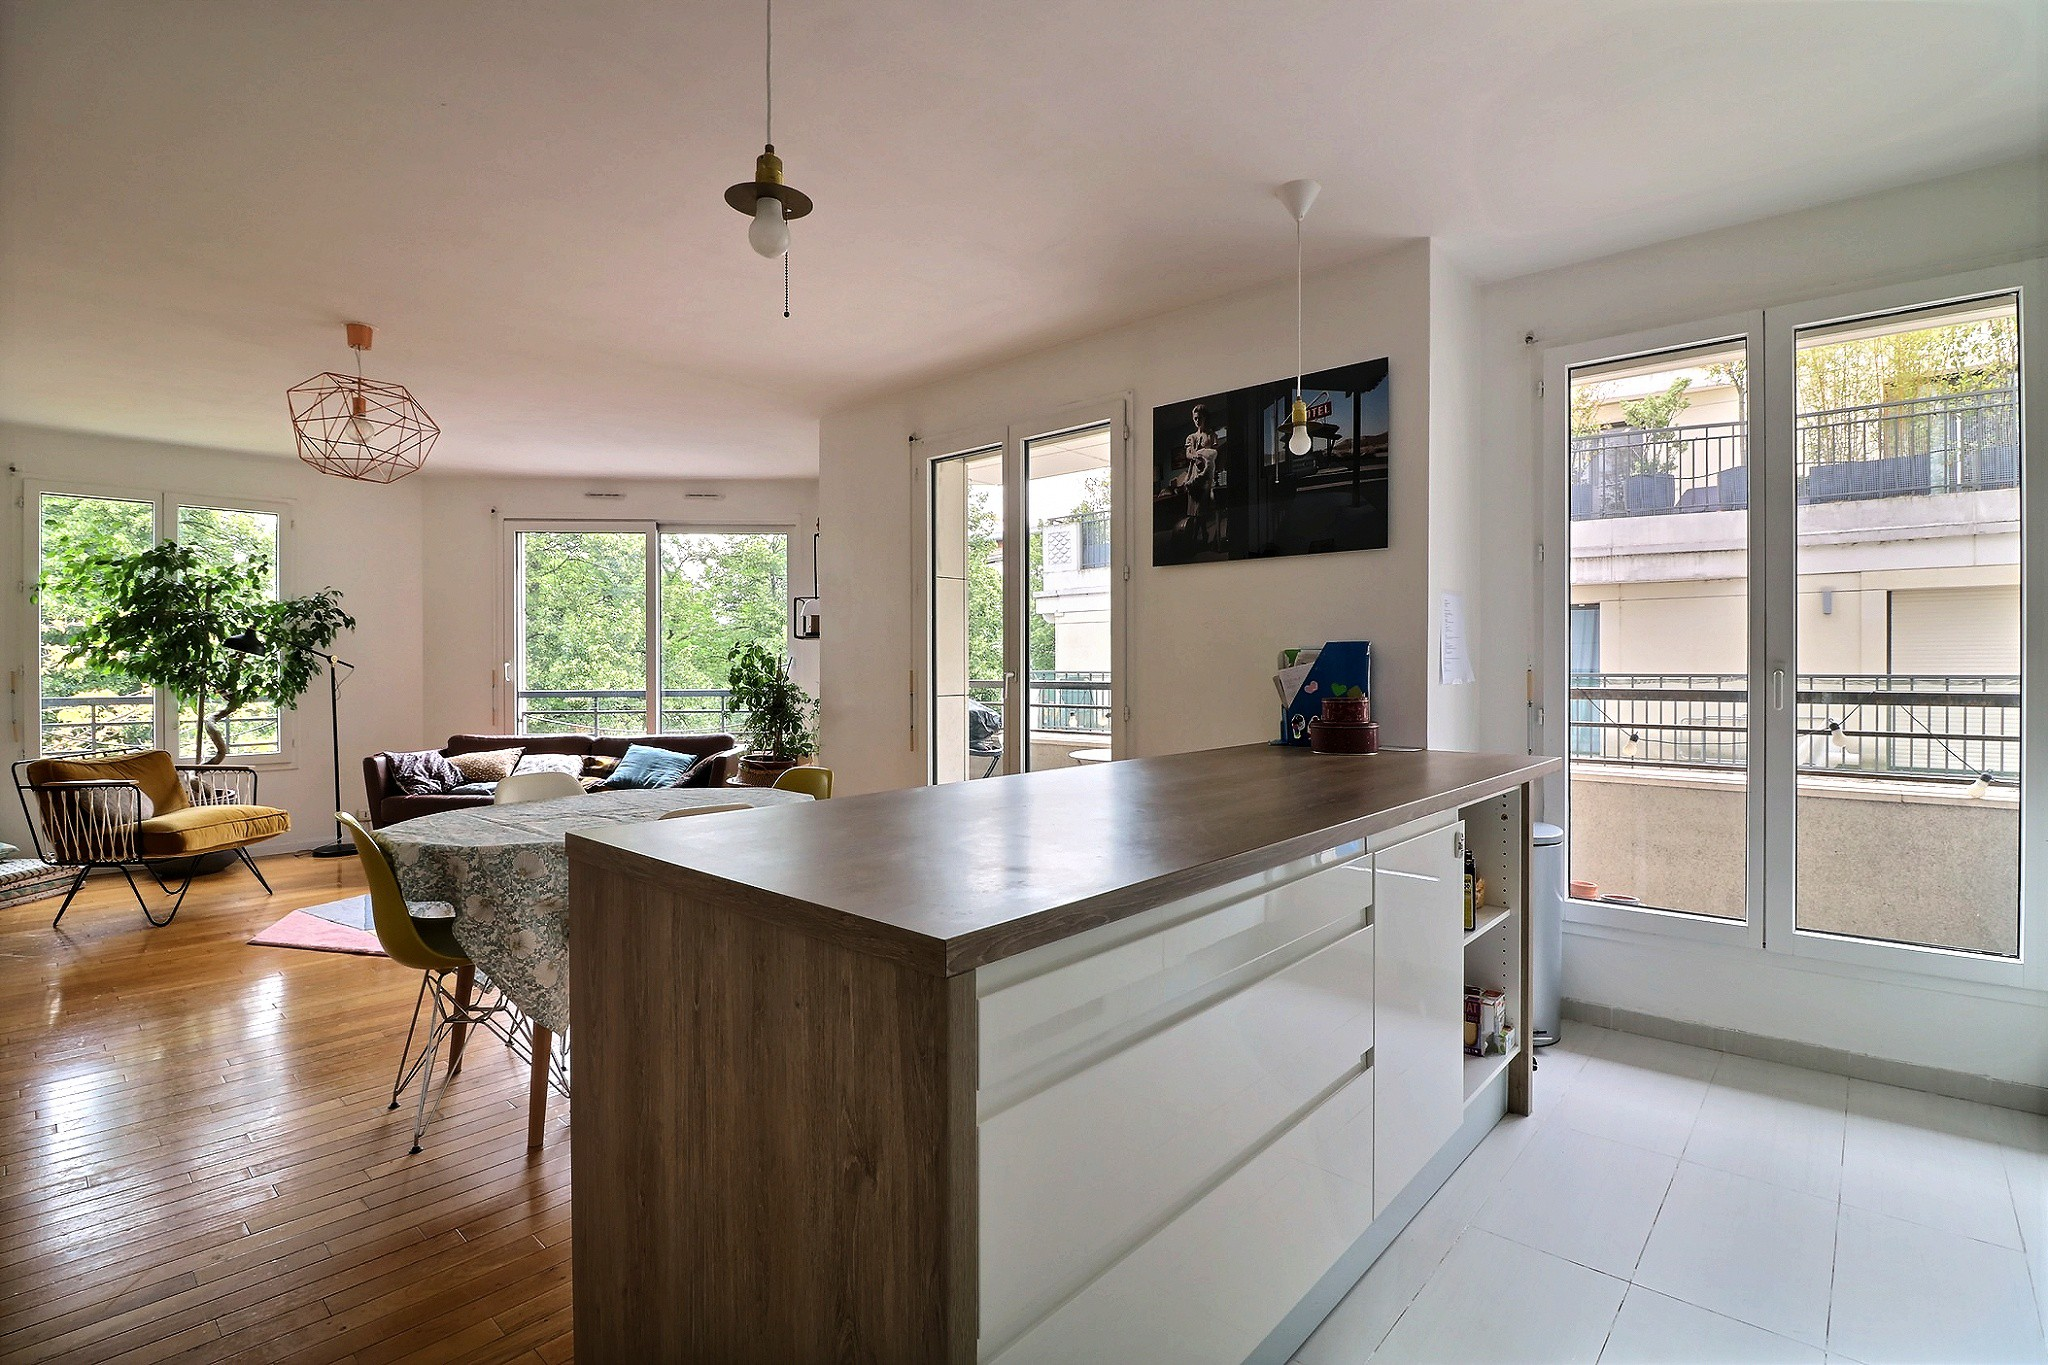 enaparte-ref153-4P-Levallois-RueRivay-photo-5